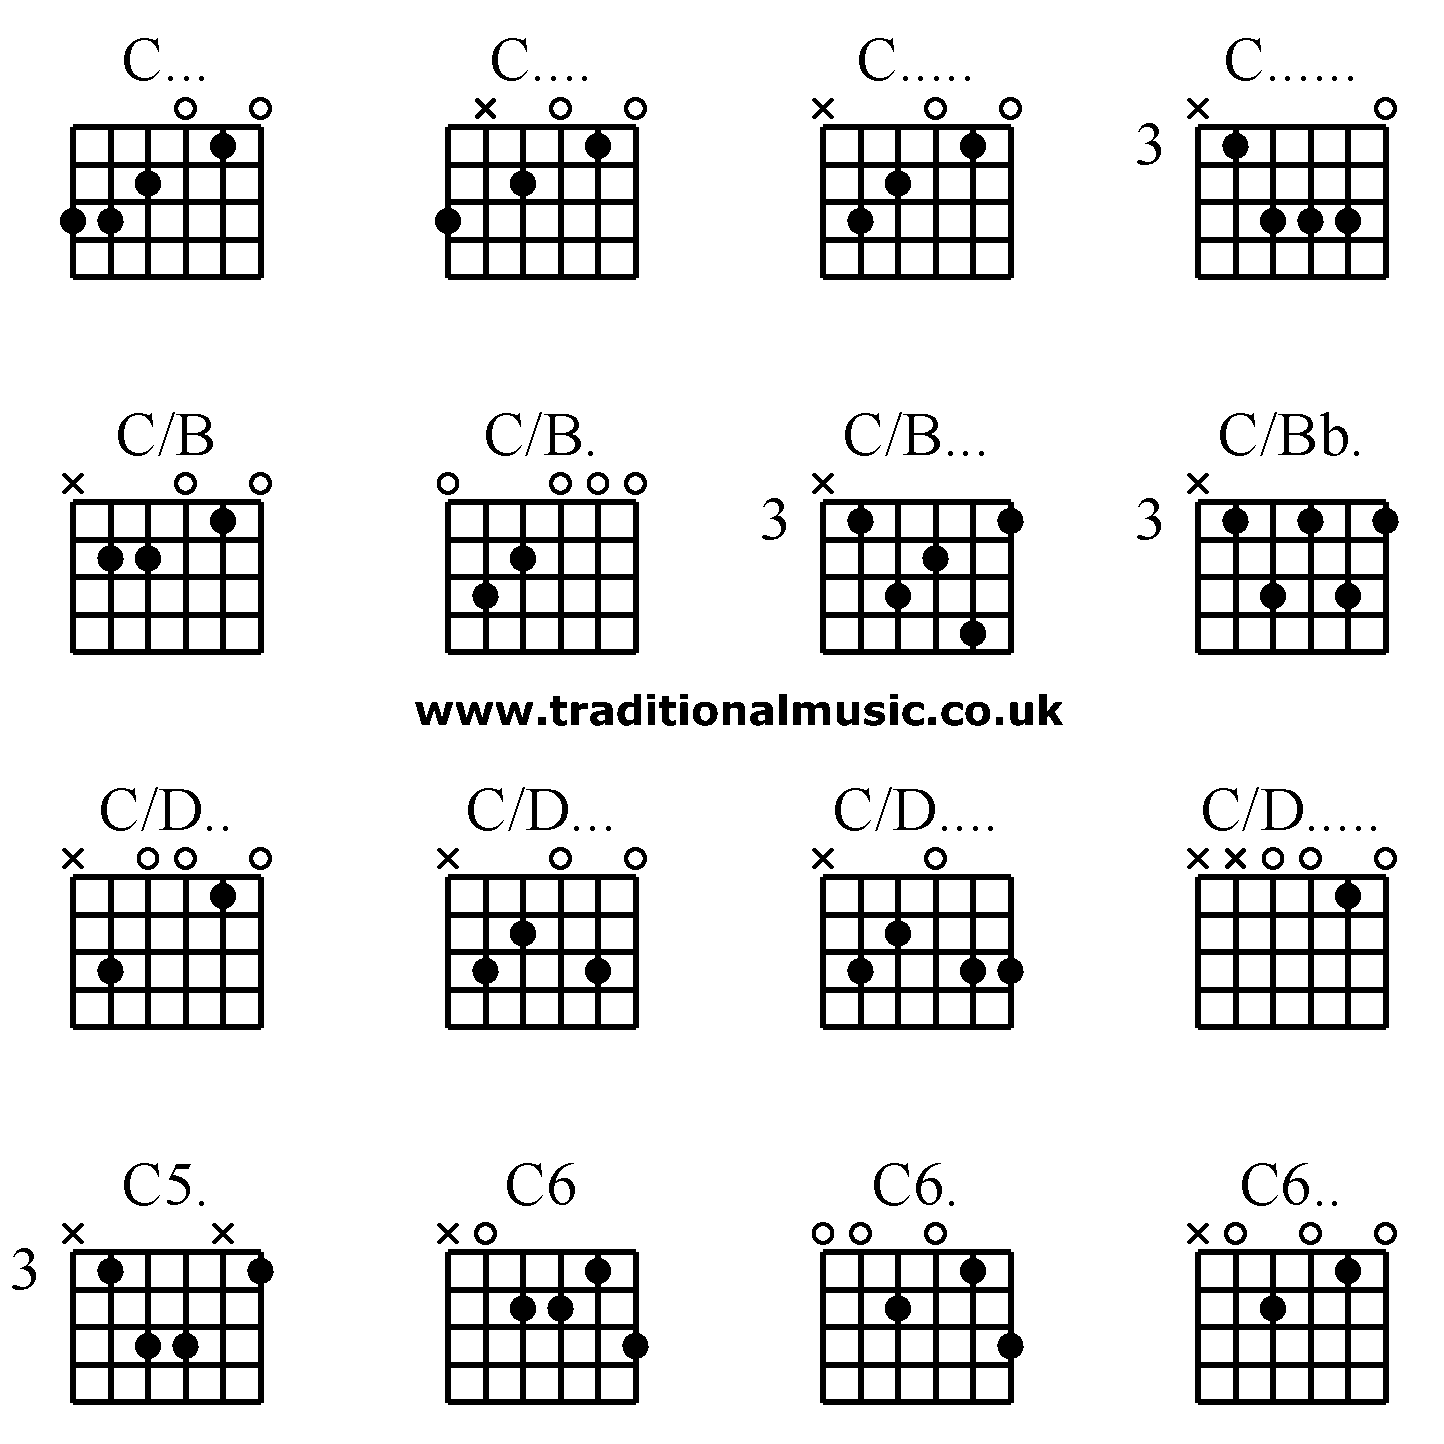 Guitar chords advanced c c c c cb cb cb cbb cd c advanced guitar chordsc c c hexwebz Choice Image